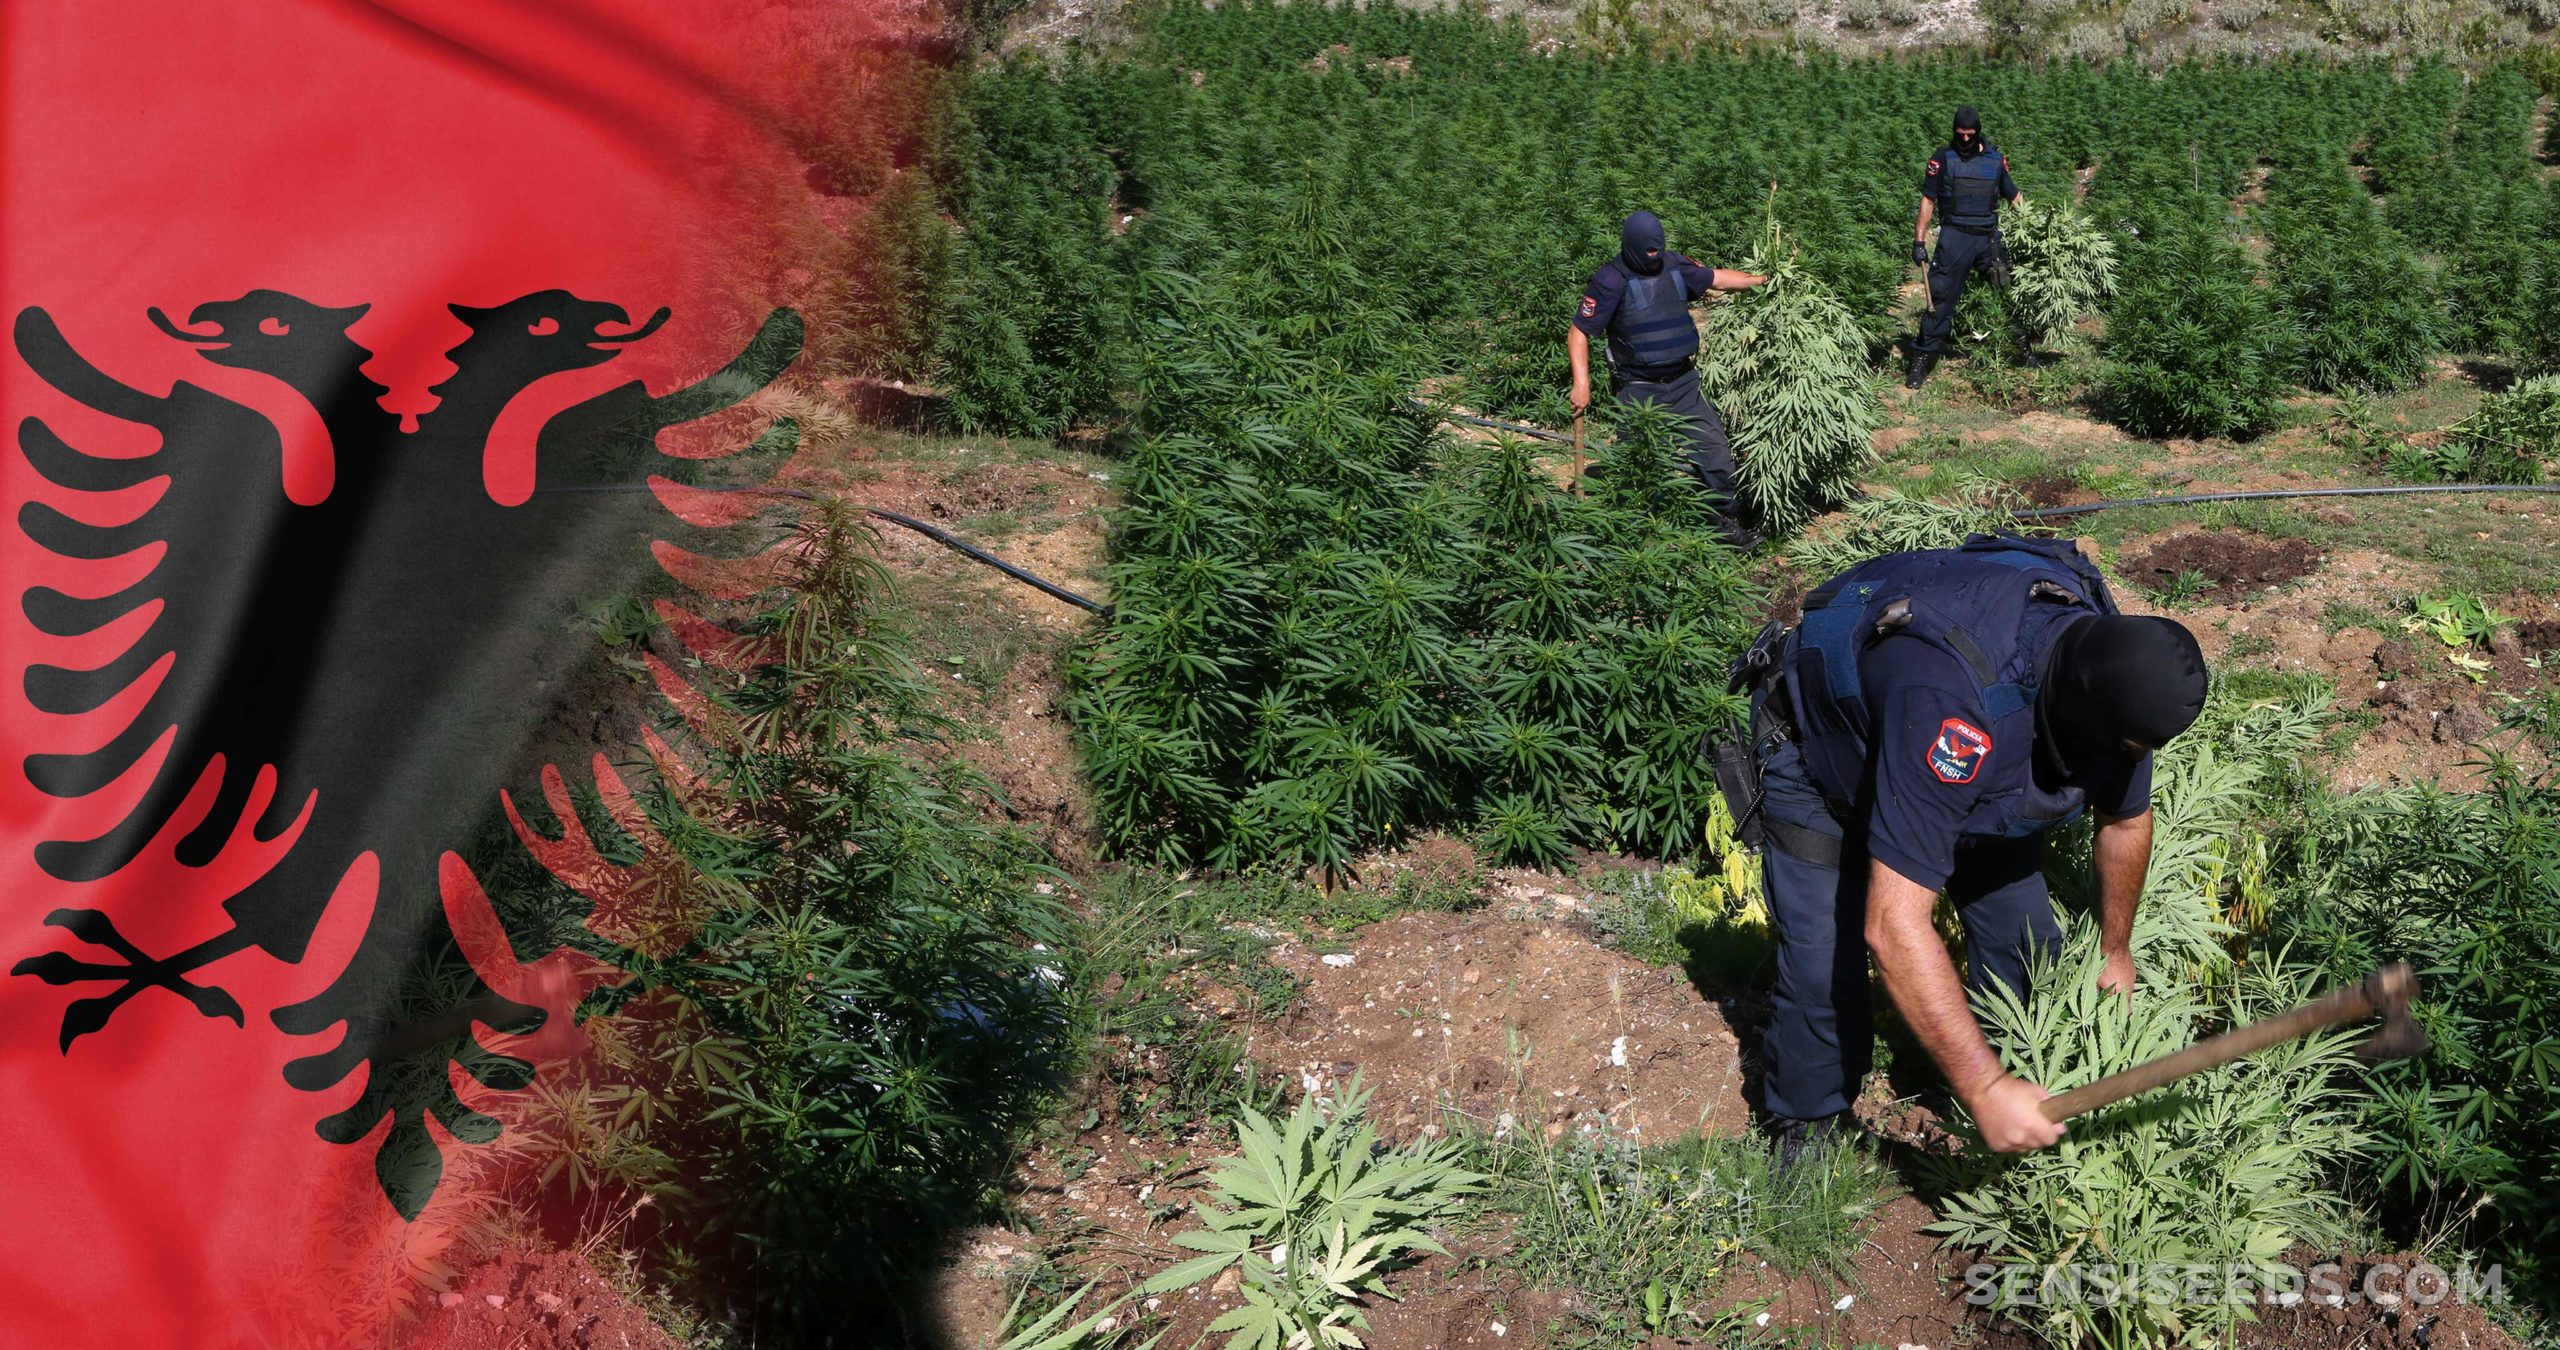 The Albanian flag and workers in a cannabis field